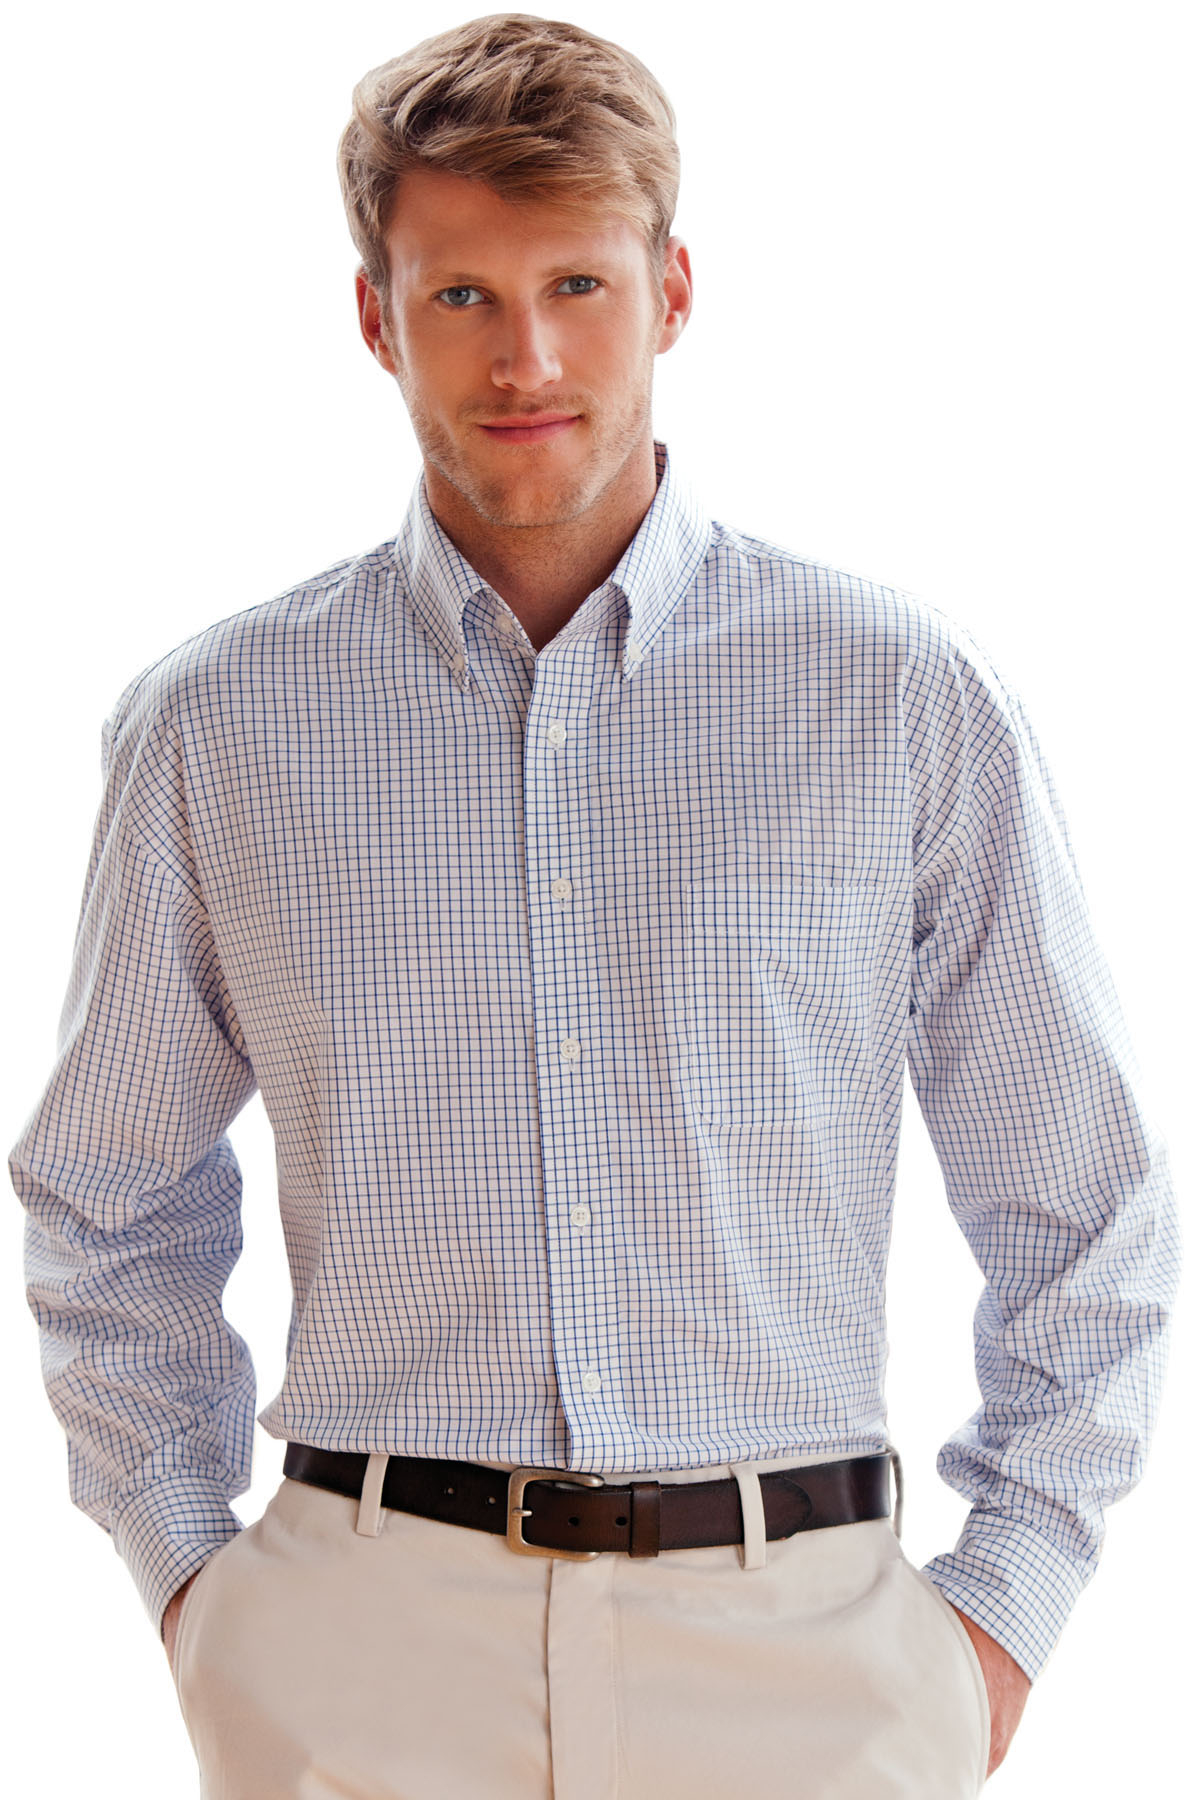 Vantage 1105 - Blended Poplin Box Plaid Shirt